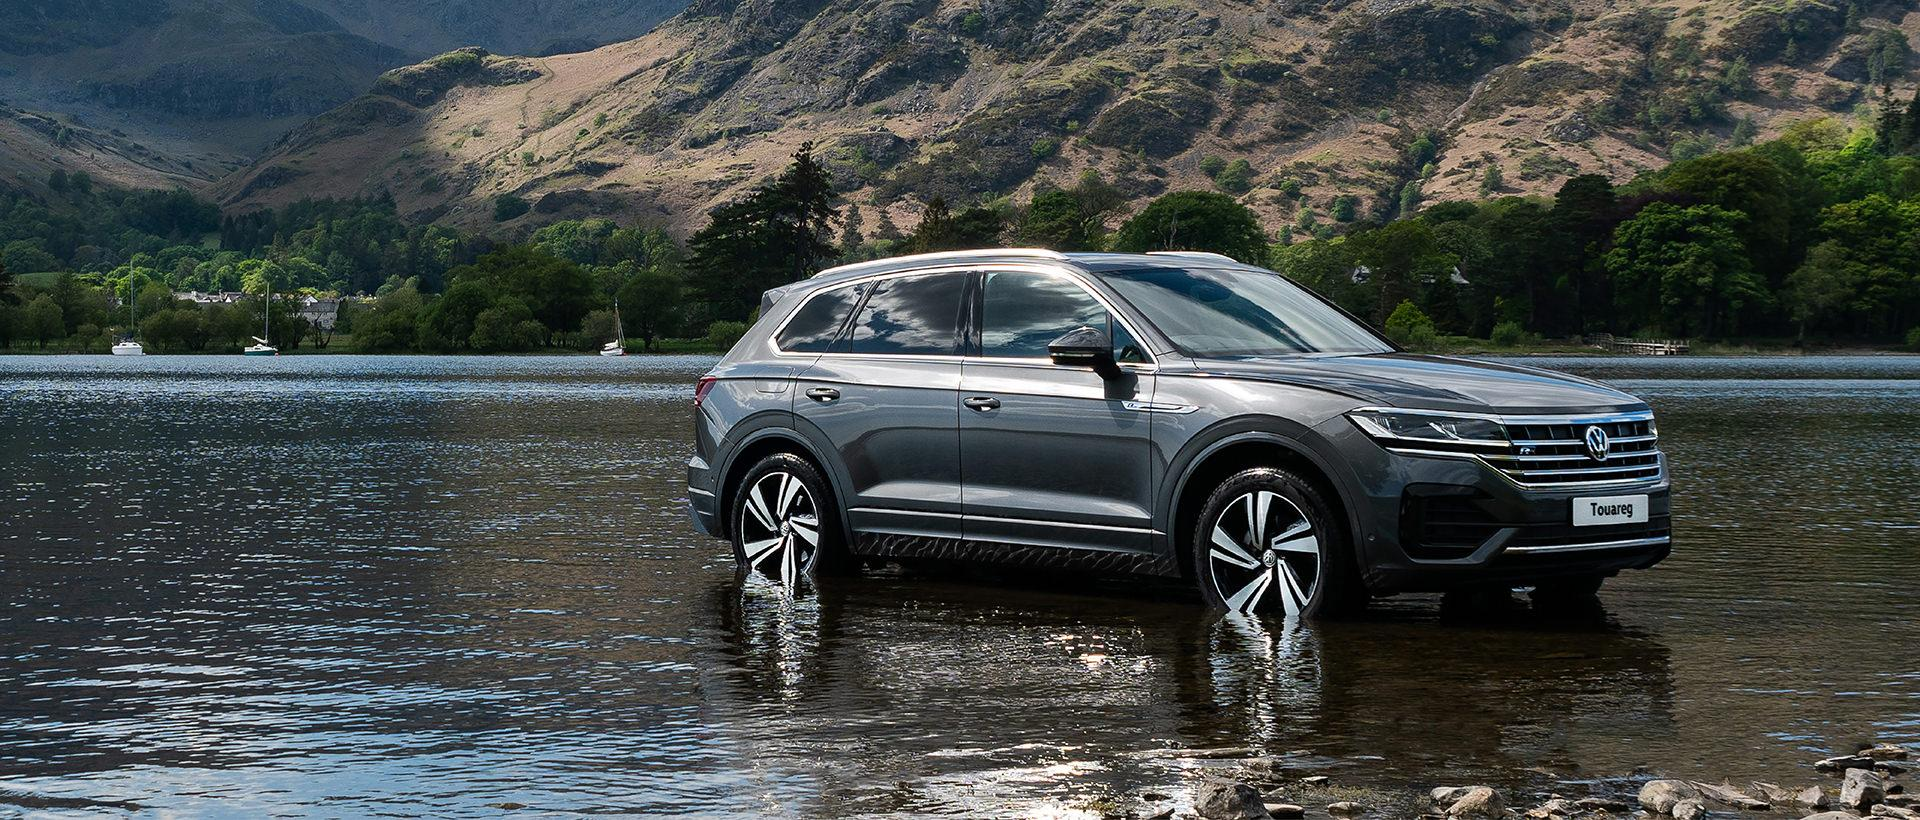 Volkswagen Touareg Finance Offer